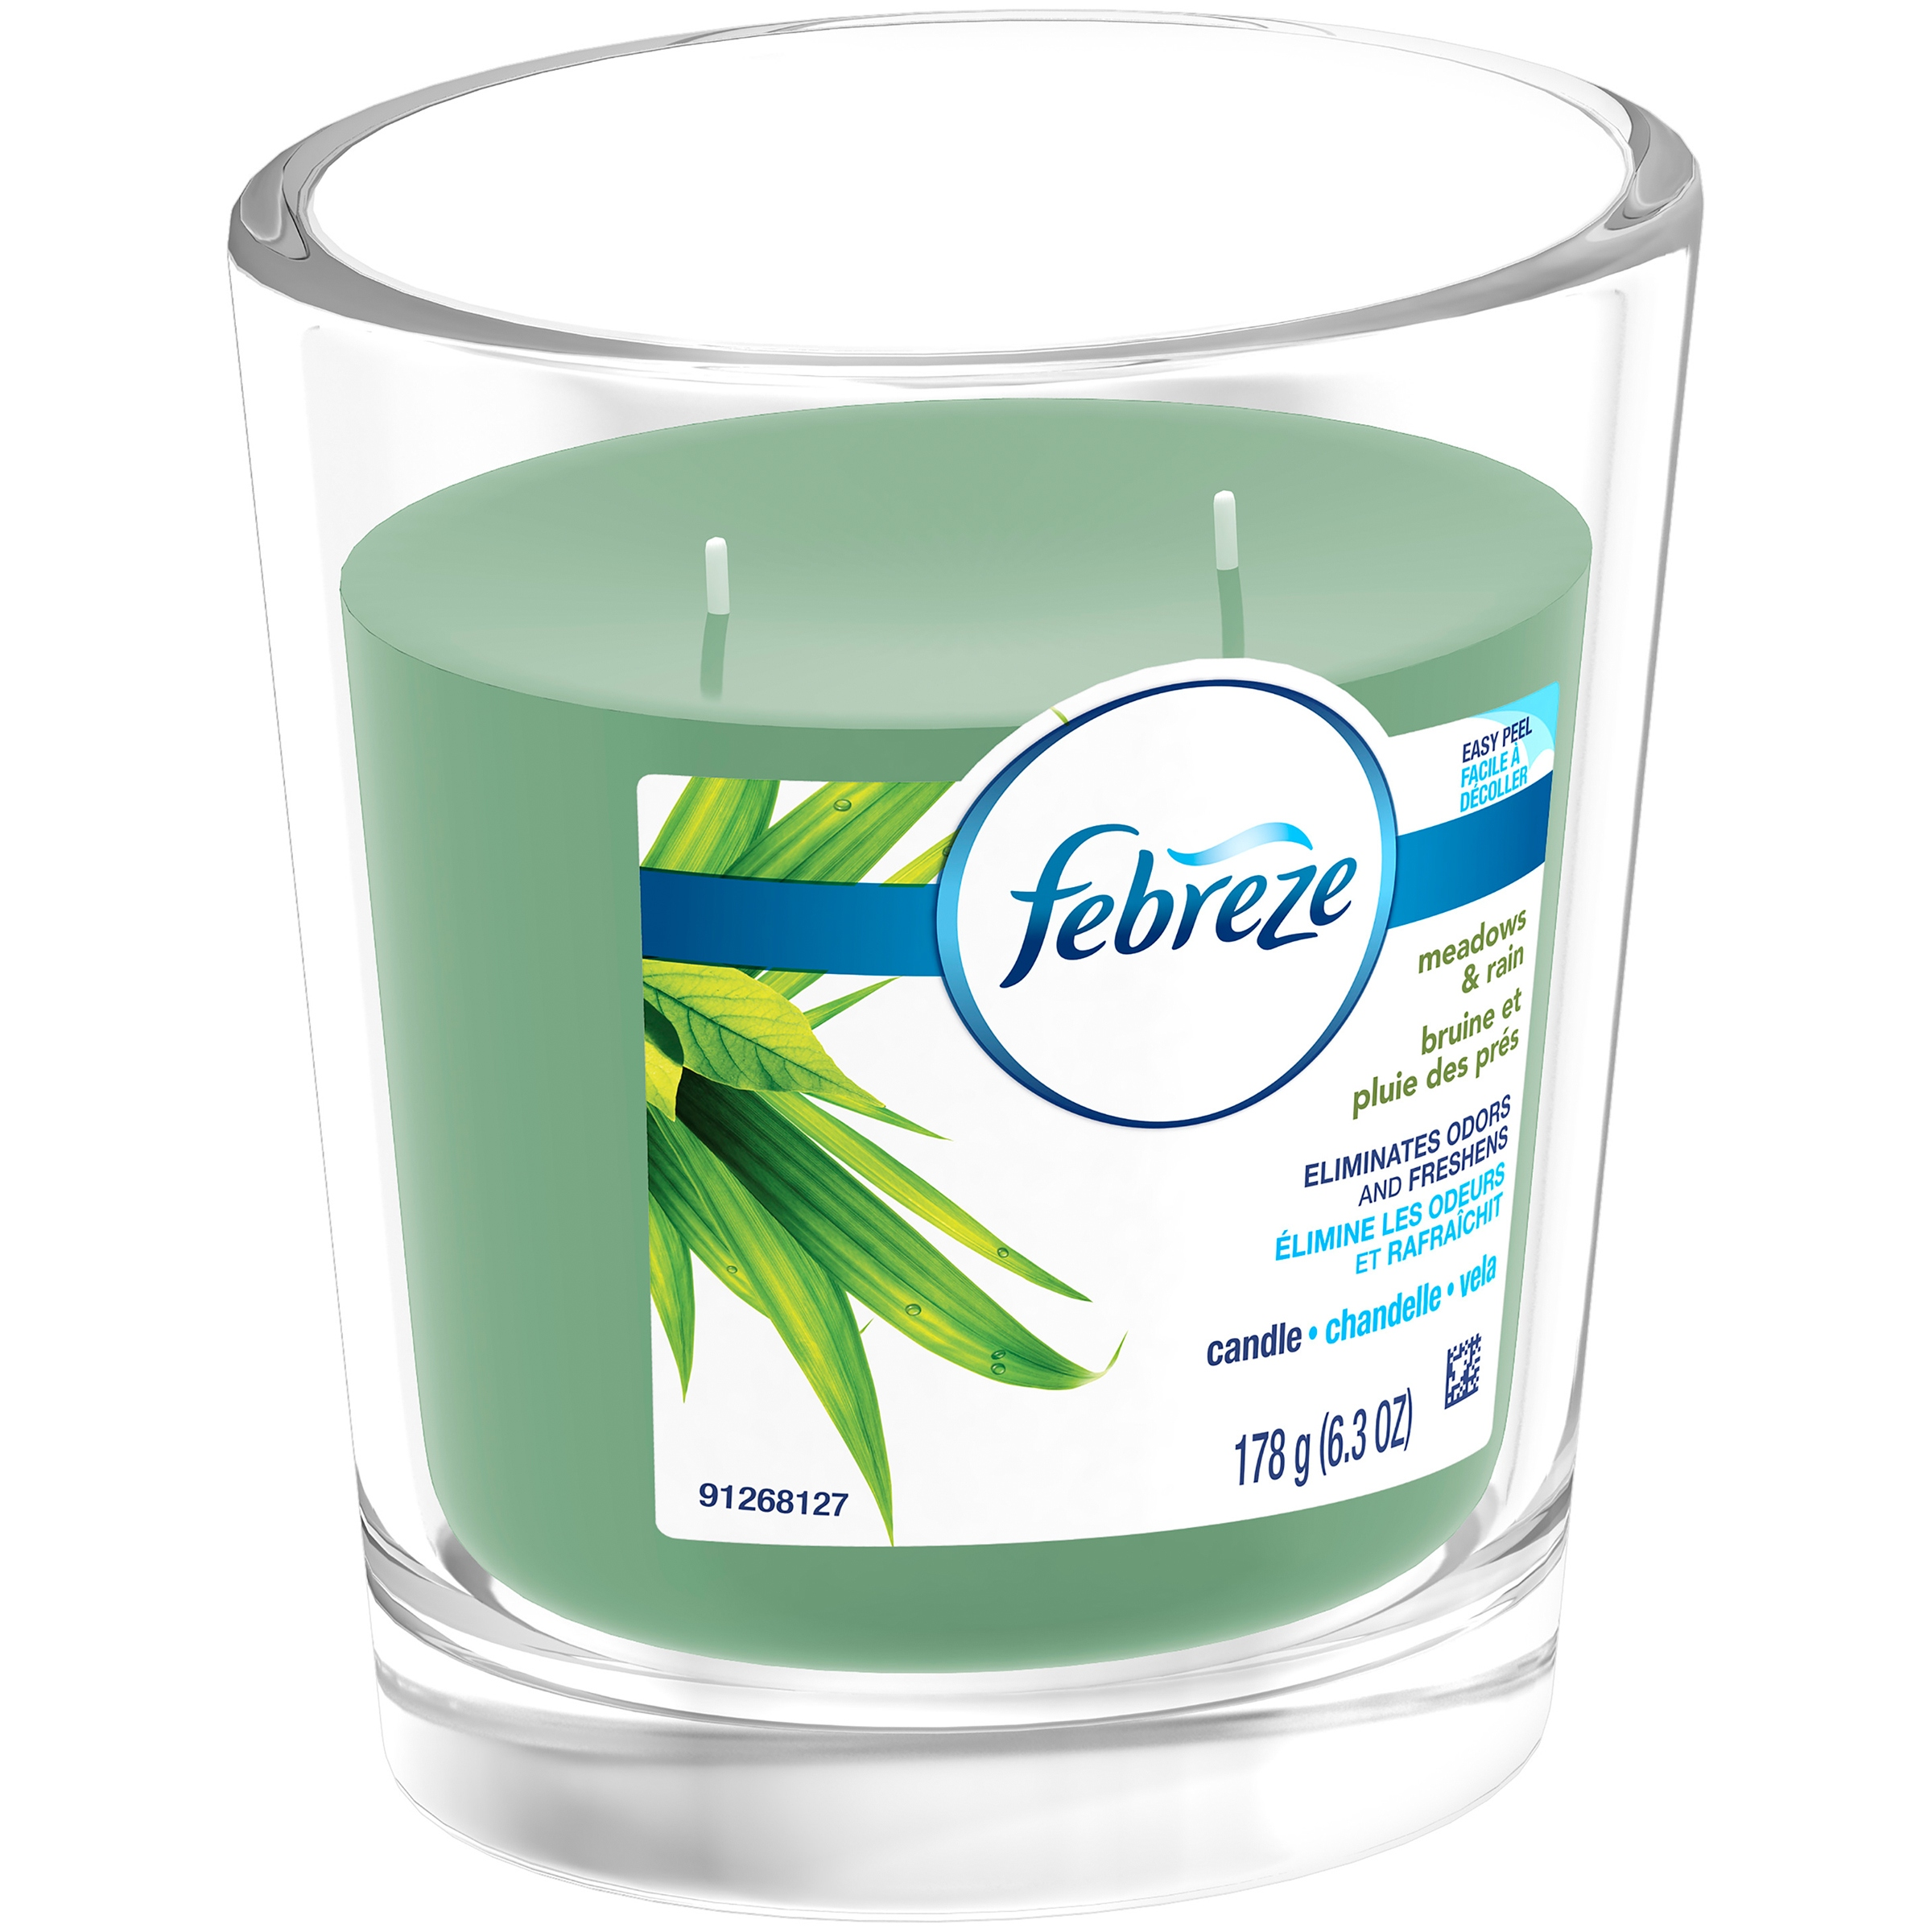 Febreze Candle, Meadows & Rain, 6.3 Oz